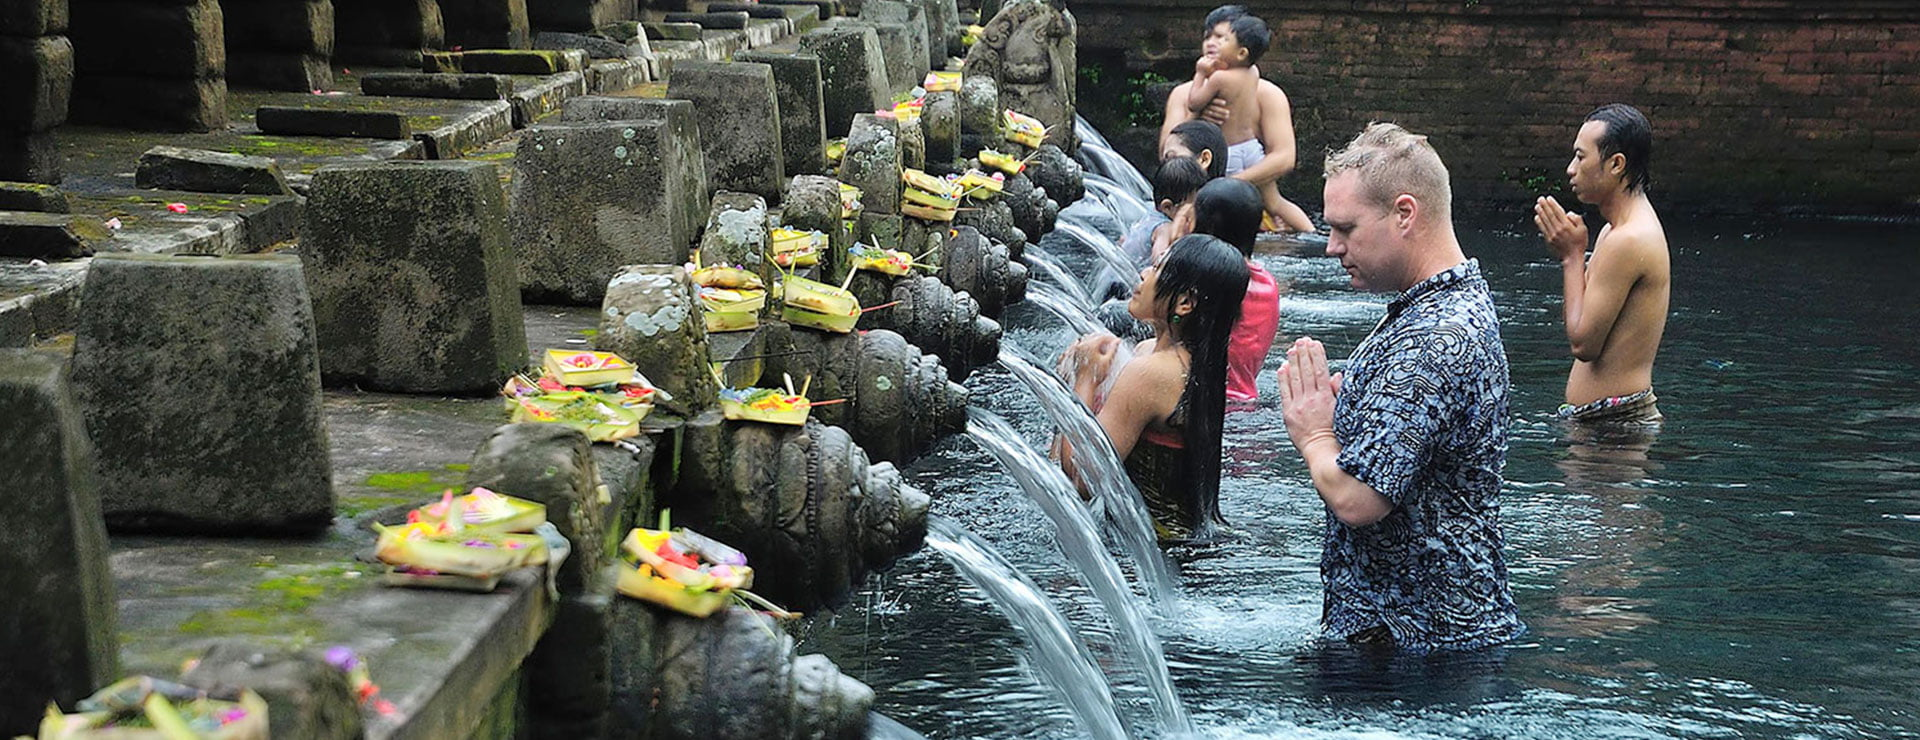 A List Of Fun Activities You Can Do For Free In Bali